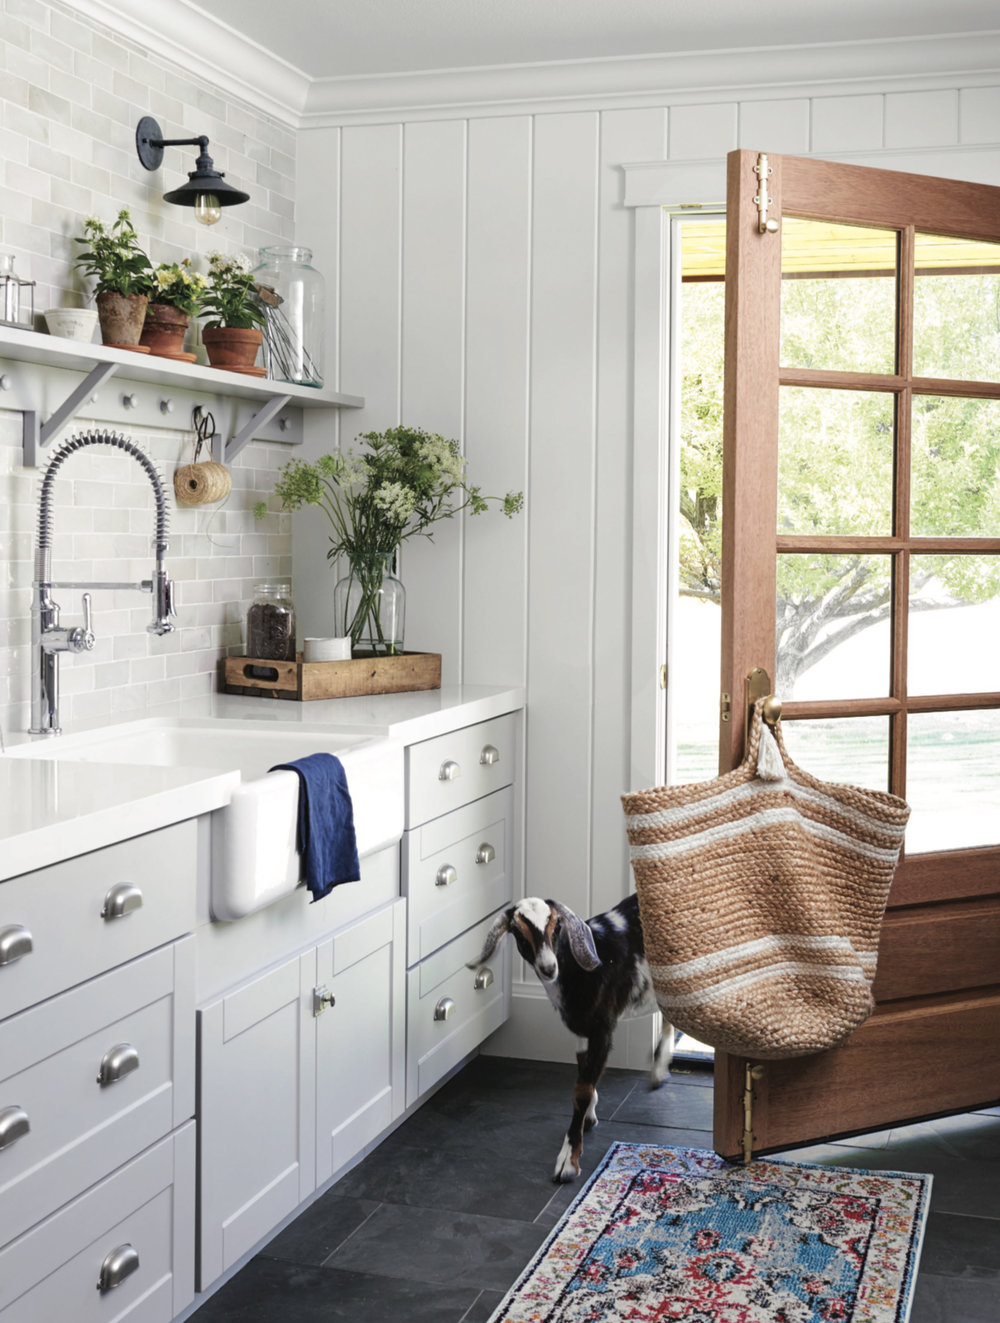 Farmhouse+laundry+room+design+with+tongue+and+groove+quartz+countertops+gray+cabinets+ +#farmhousedesign+#farmhouse+#laundryroom copy.jpg